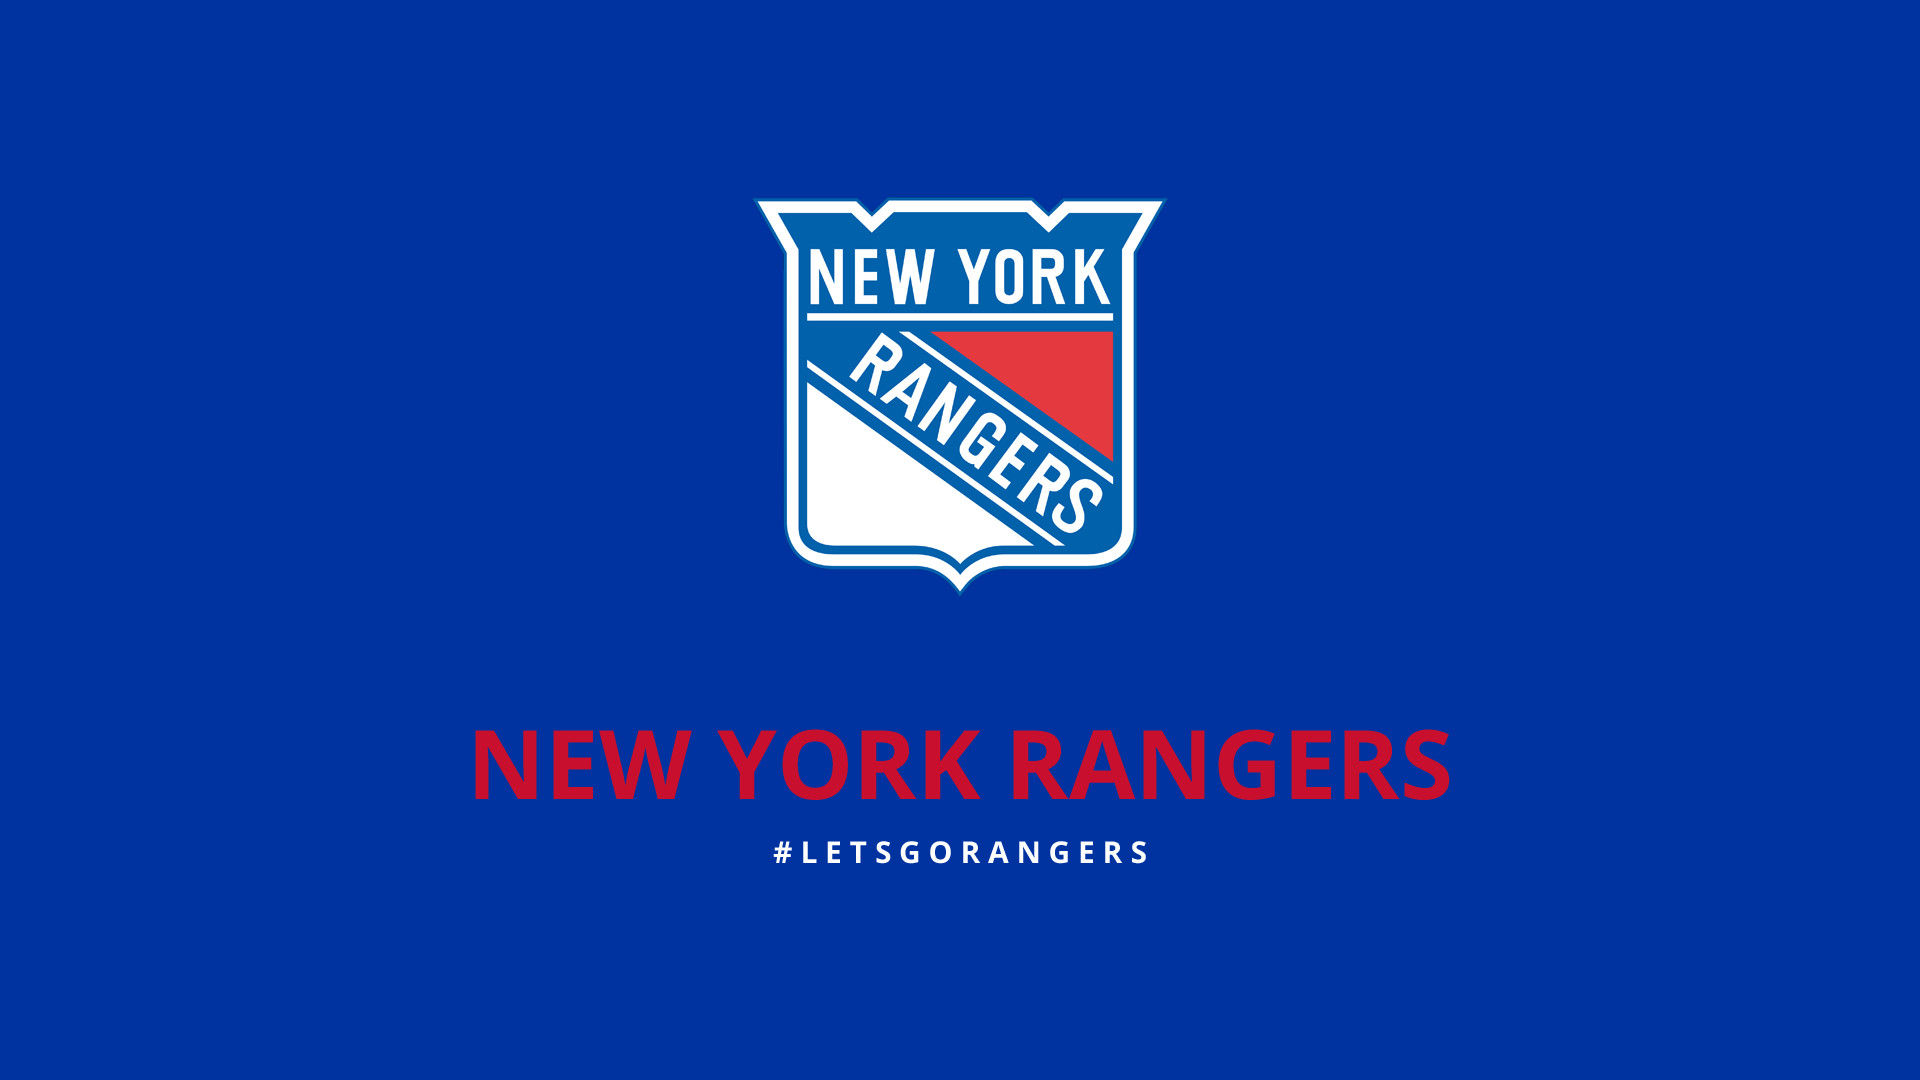 1920x1080 NY Rangers HD Wallpaper by Carlie Palumbo PC.476-KYS